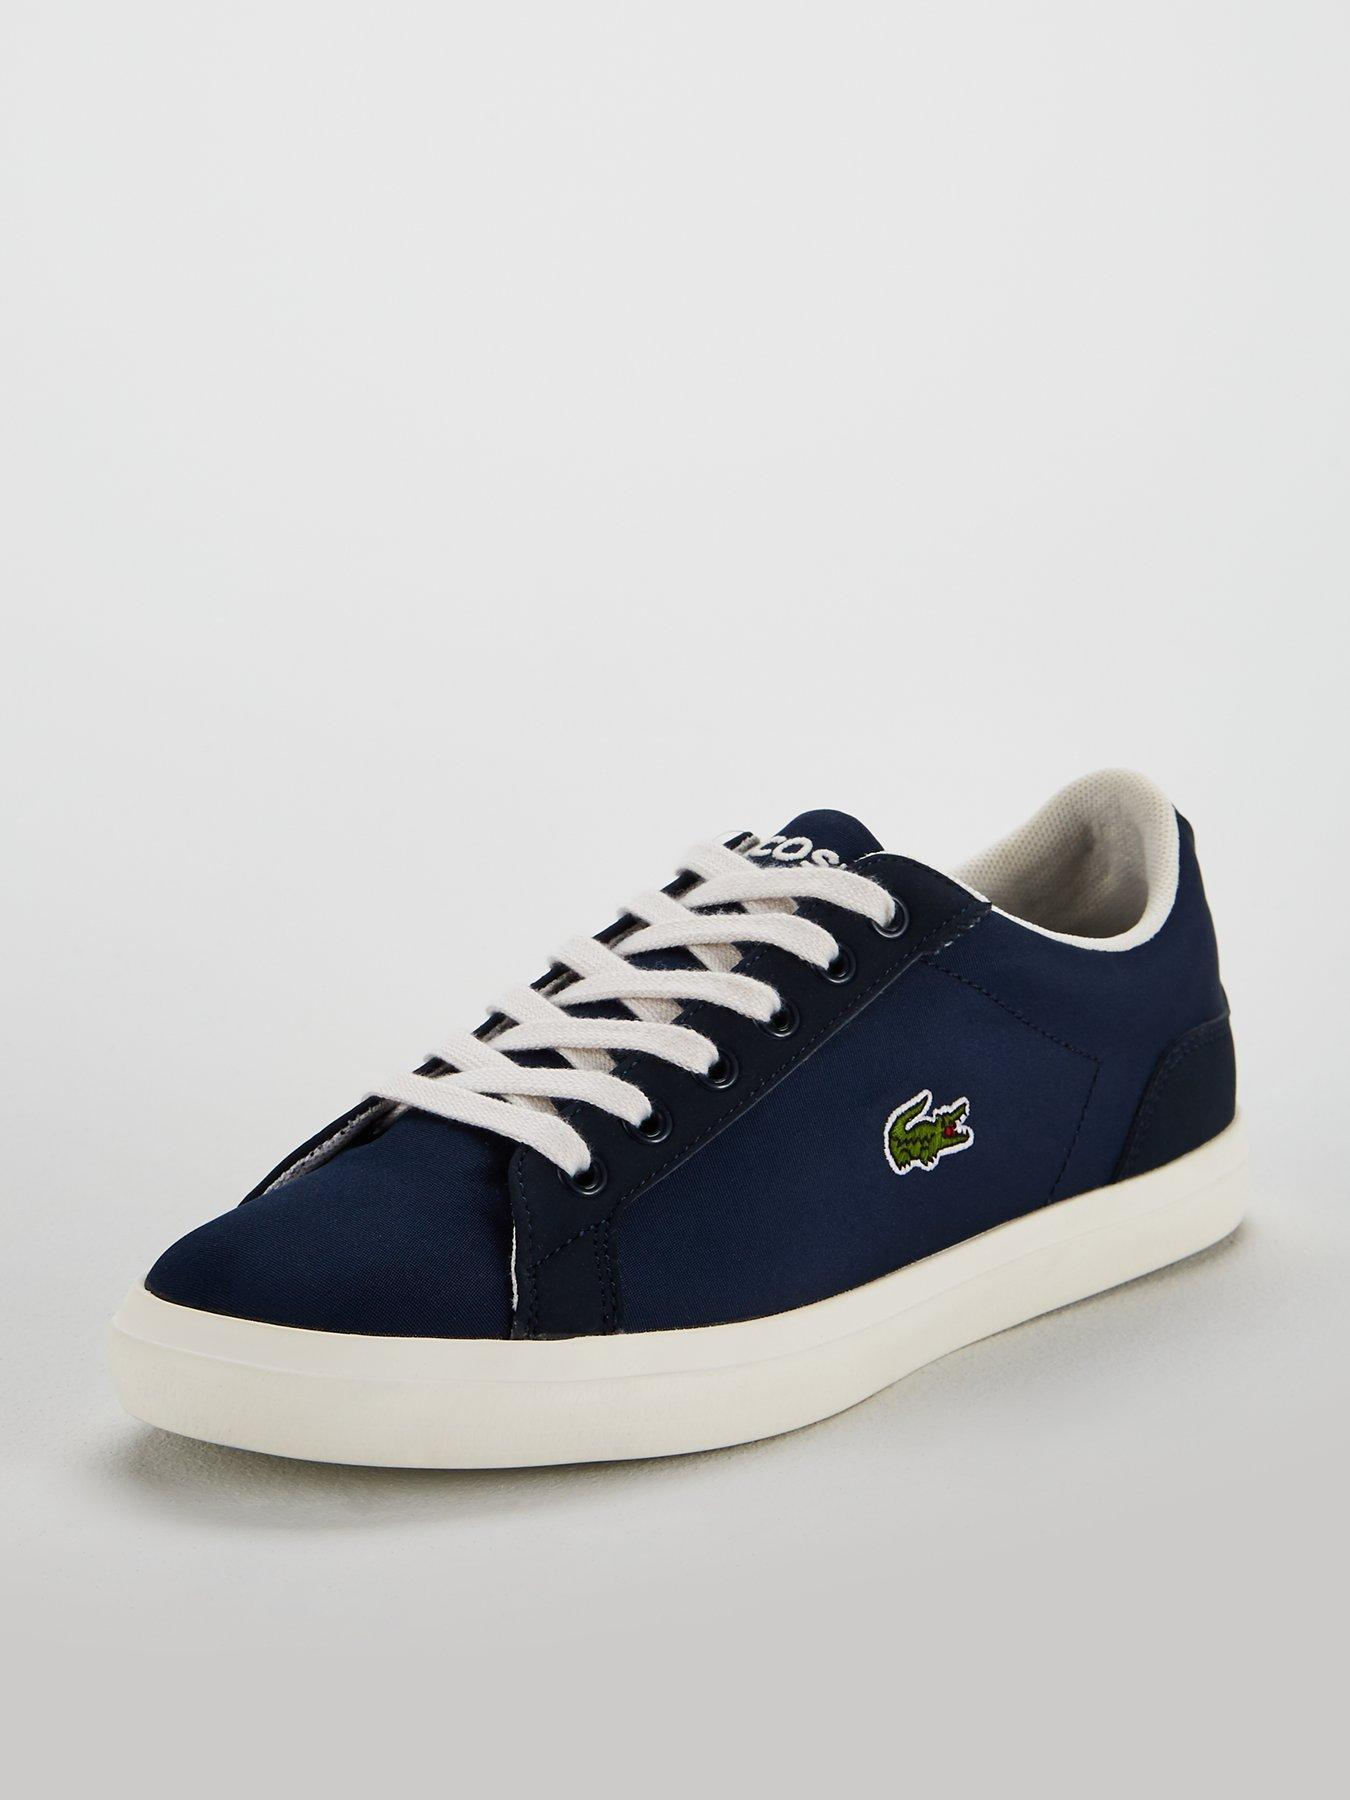 a40b75863c28 czech lacoste kids ampthill 117 2 little kid big kid white 66ad7 ee1f0   discount lacoste lerond 317 lace up plimsoll 3df69 d5dbe